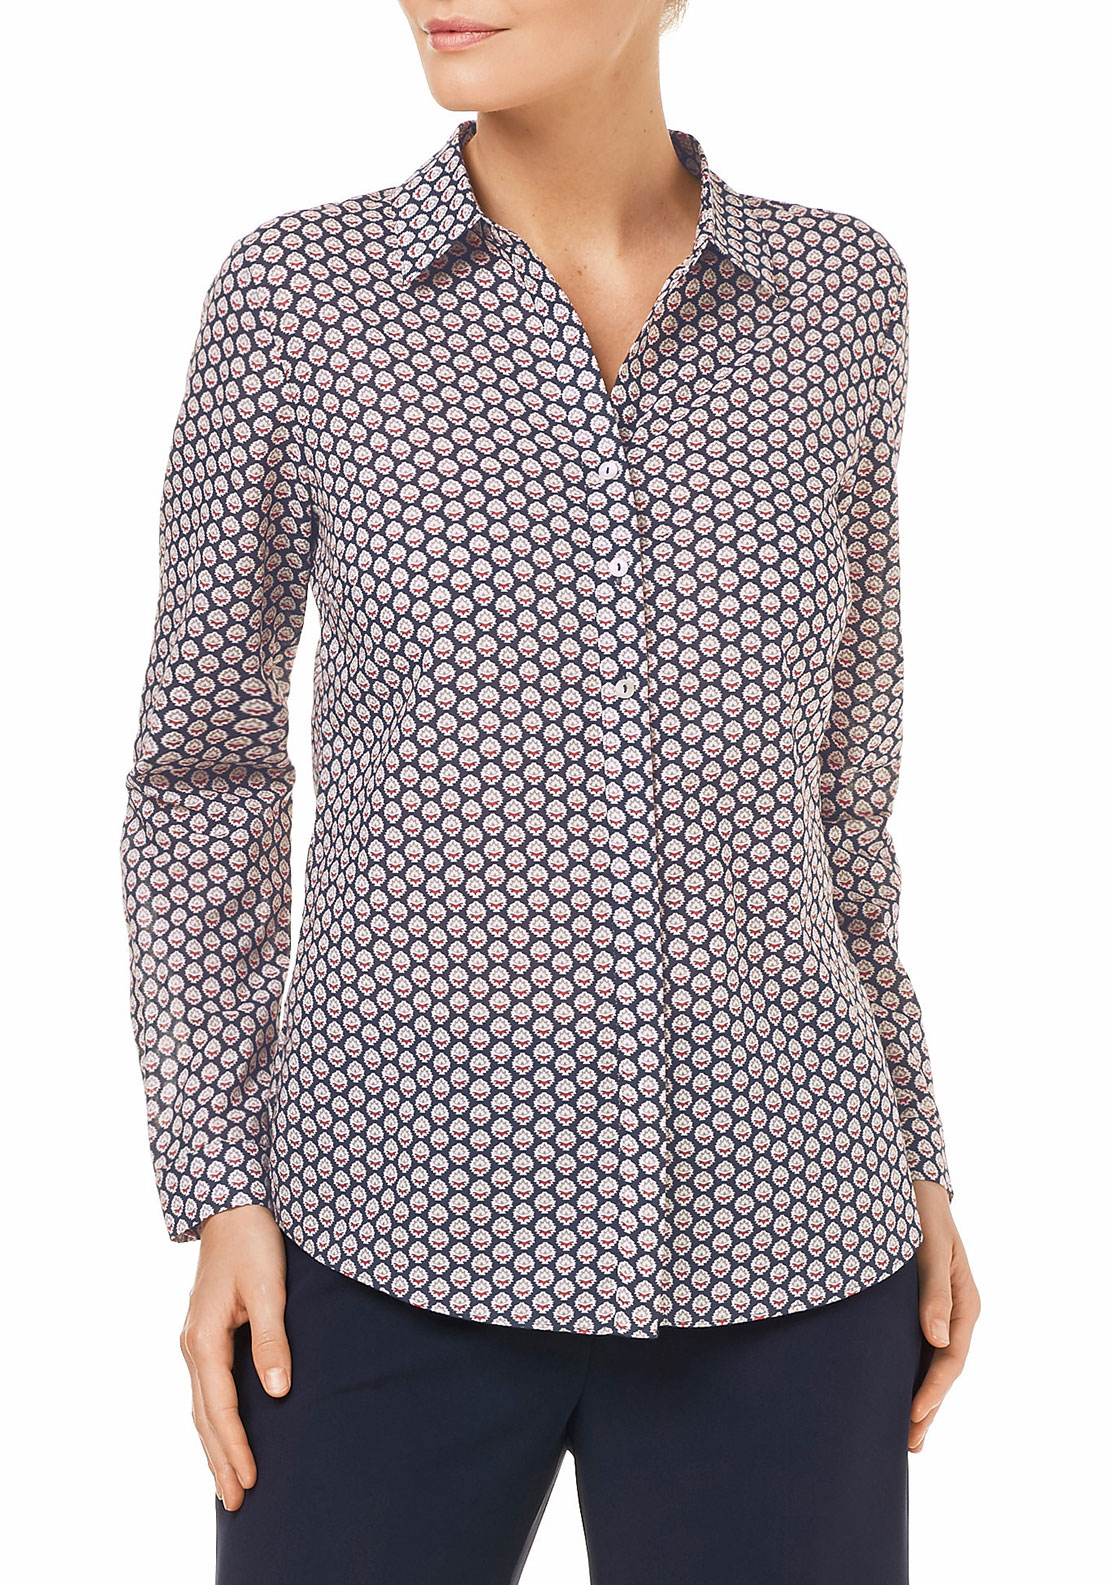 Gerry Weber Printed Blouse, Navy Multi